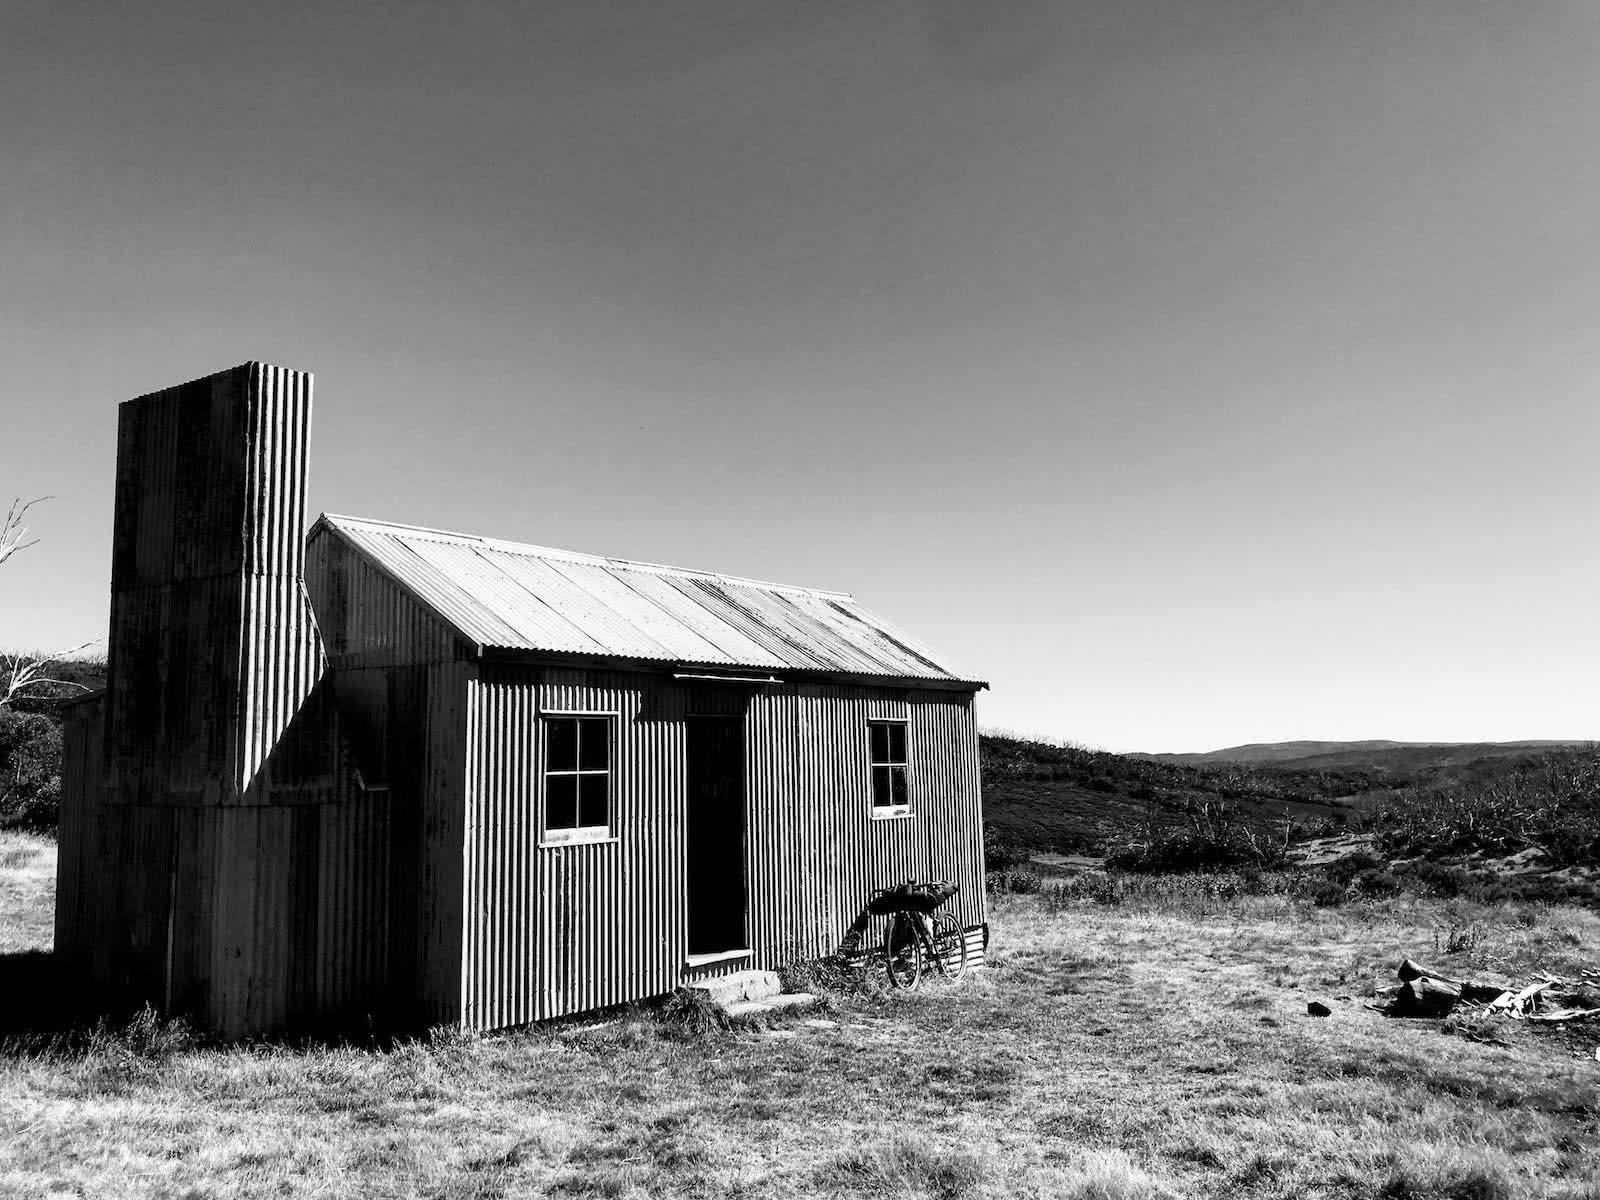 mattie gould, bikepacking, jagungal wilderness, nsw, black and white, photo essay, o'keefe's hut